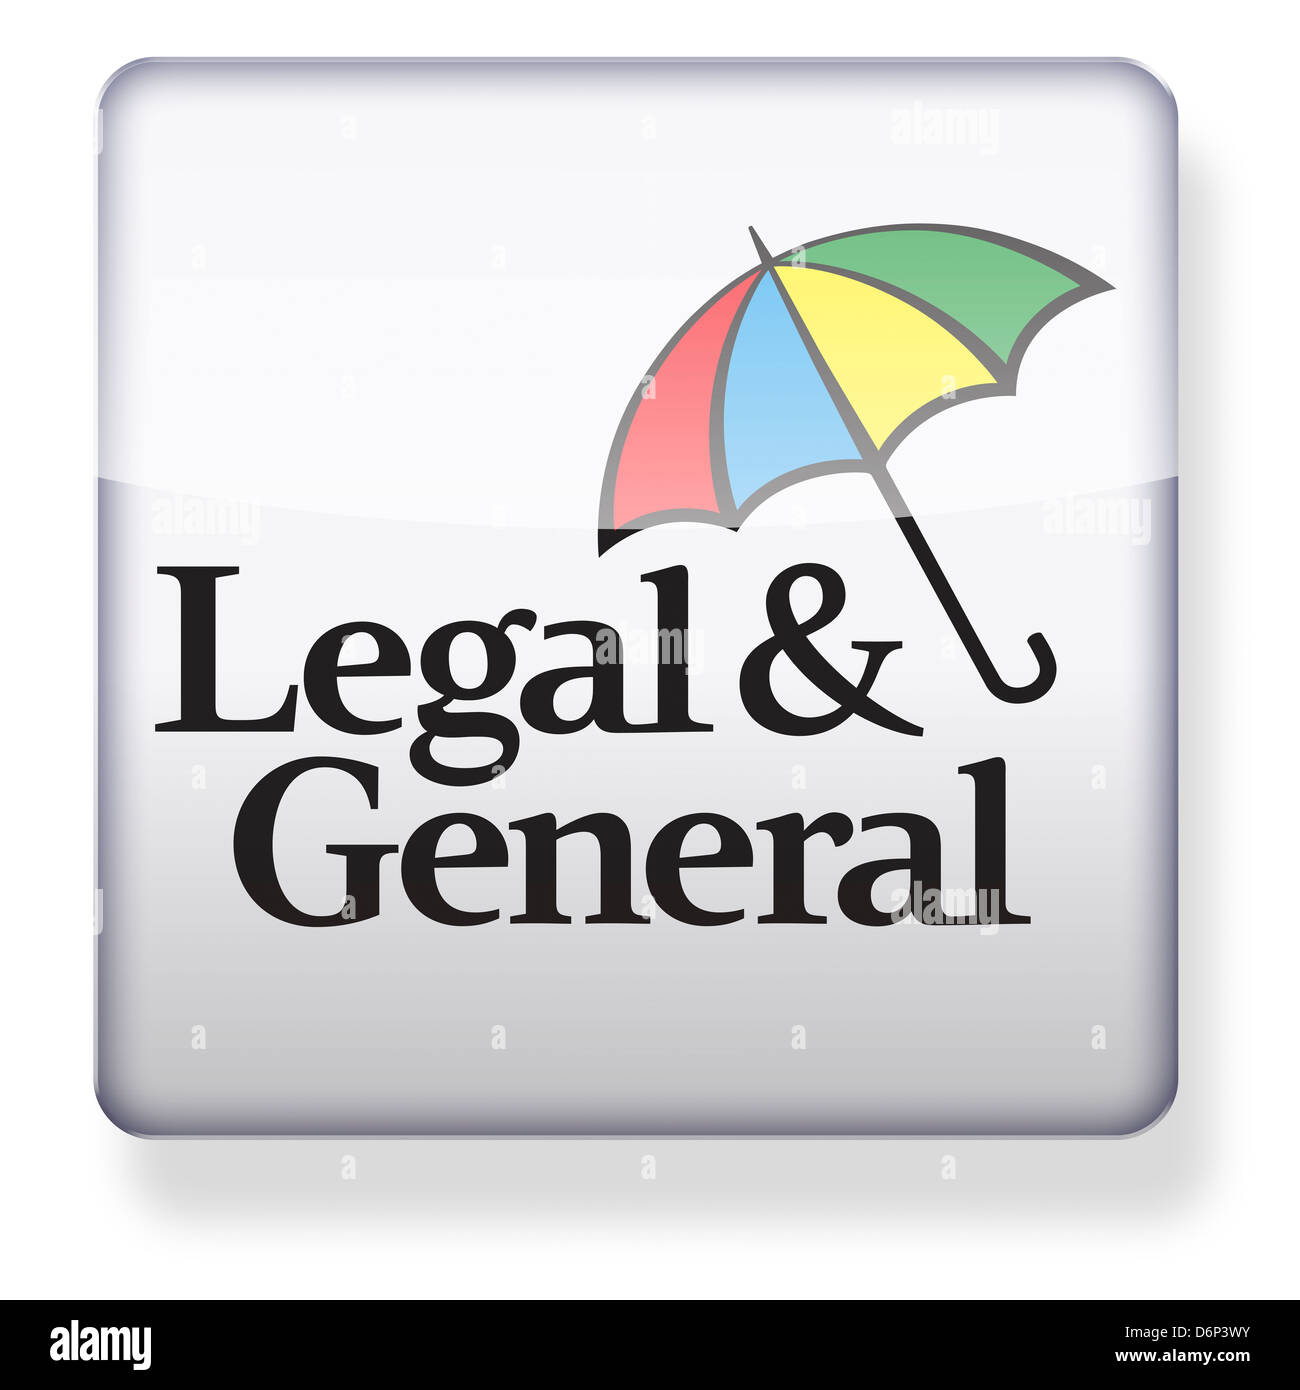 Legal and General logo as an app icon. Clipping path included. - Stock Image